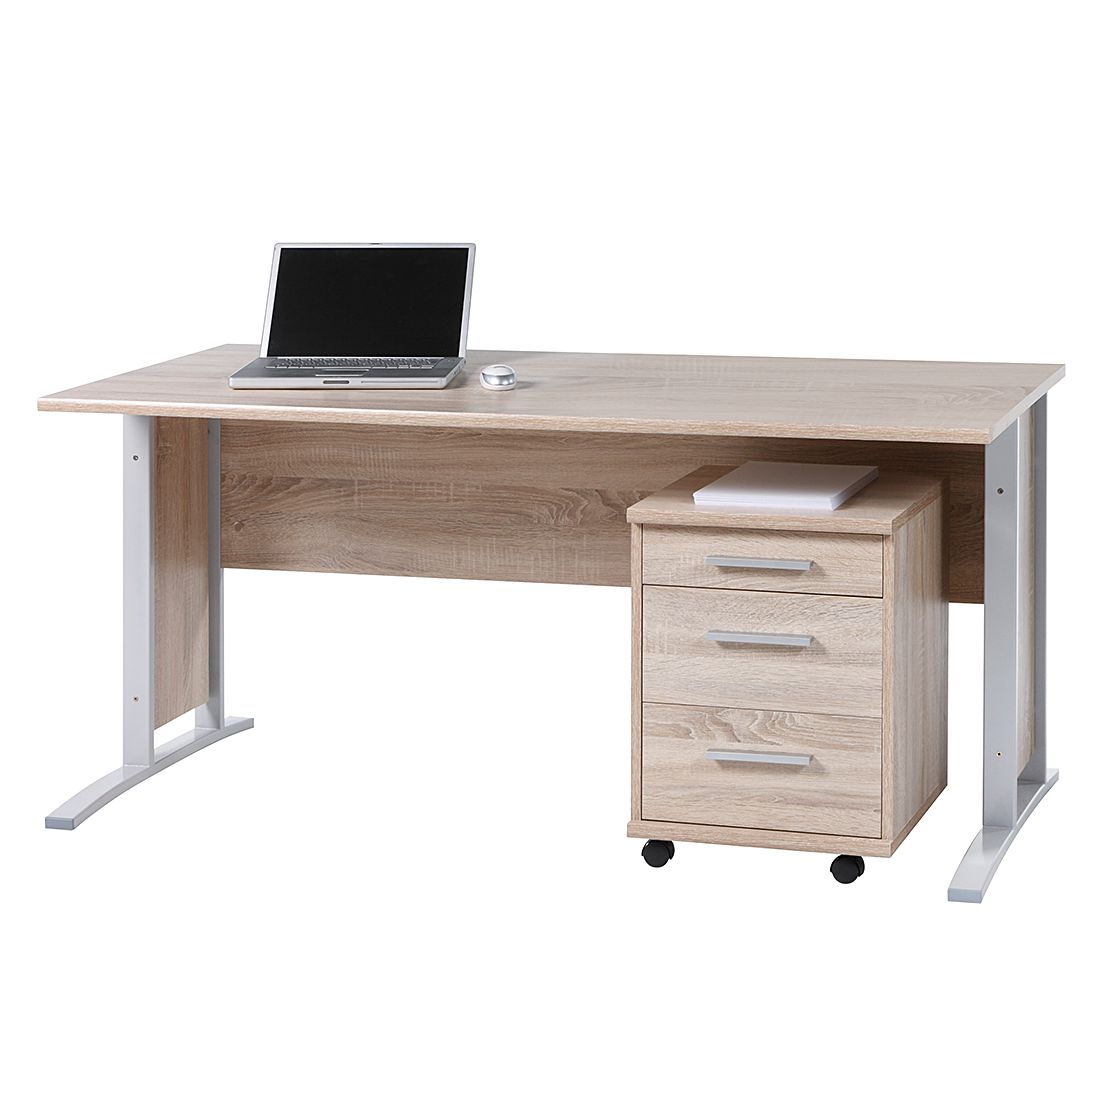 Set scrivania Massimo - Effetto quercia Sonoma Office Line, home24 office